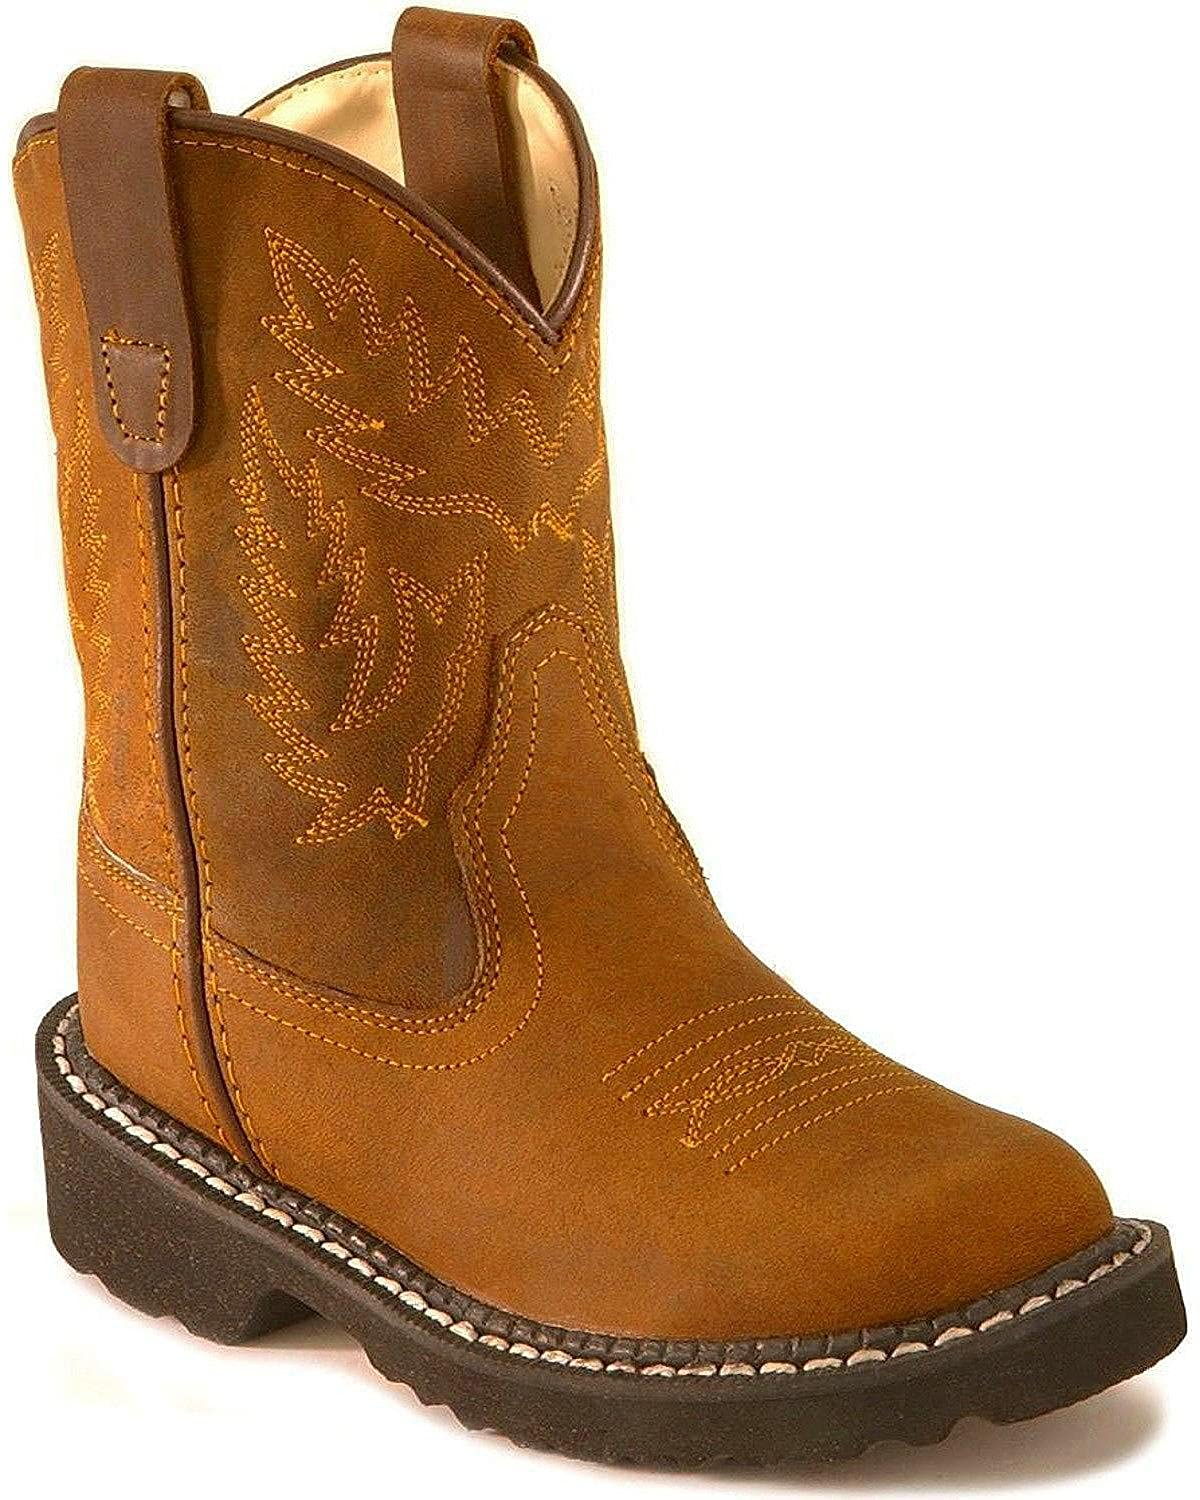 Old West Boys Crazyhorse Tubbies Boot Round Toe